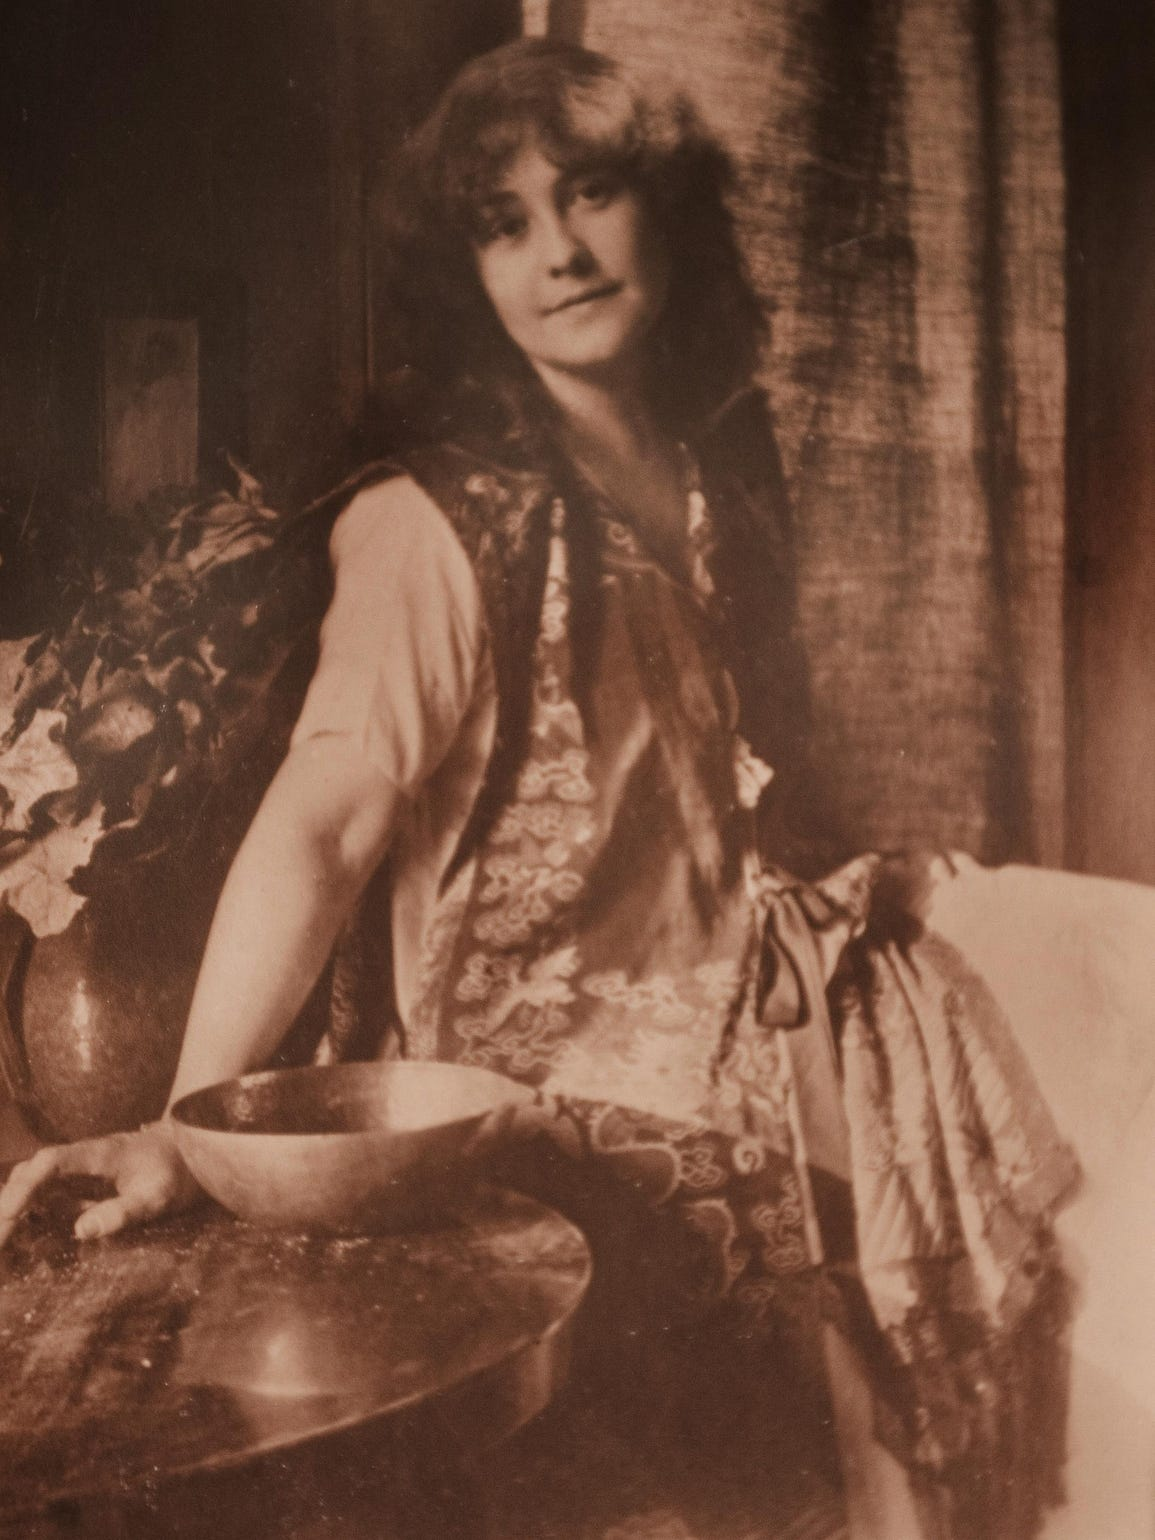 A photographic portrait of Rose O'Neill made around